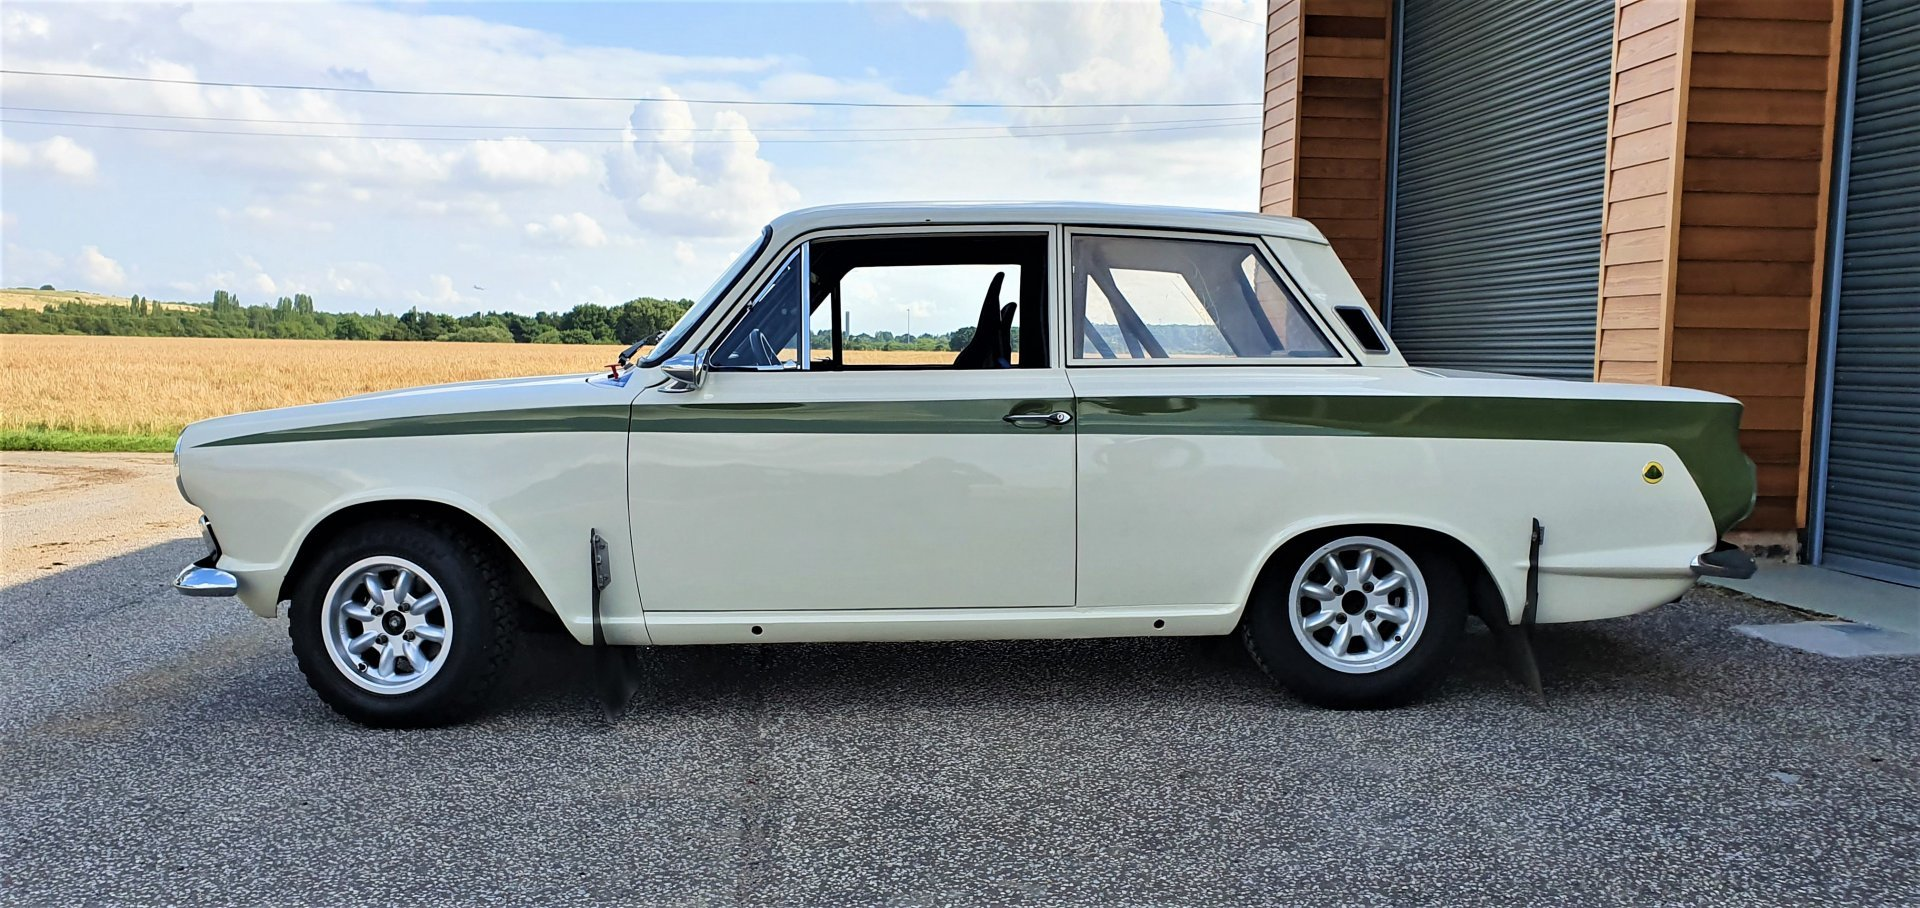 1966 Mk1 Lotus Cortina, MSA Logbook, Endurance Spec Rally Car For Sale (picture 2 of 6)